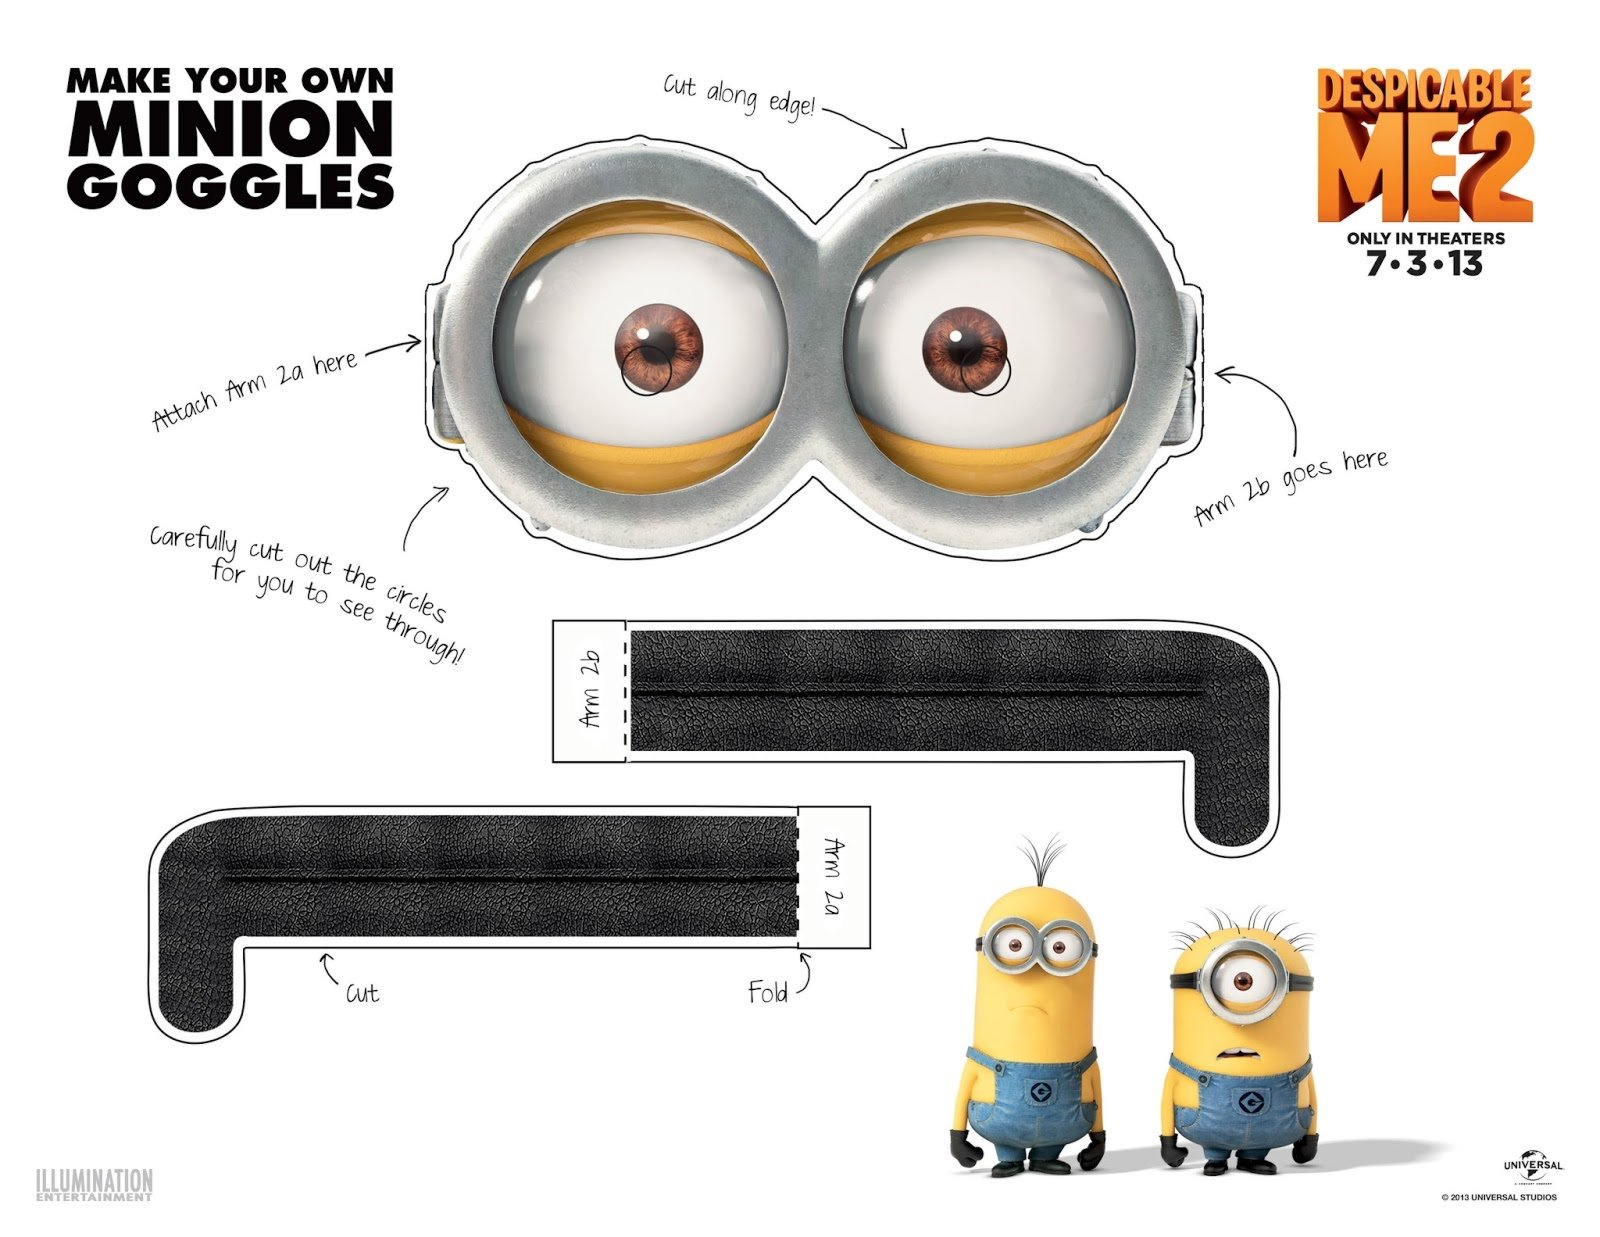 5 easy ways to make minion goggles or glasses